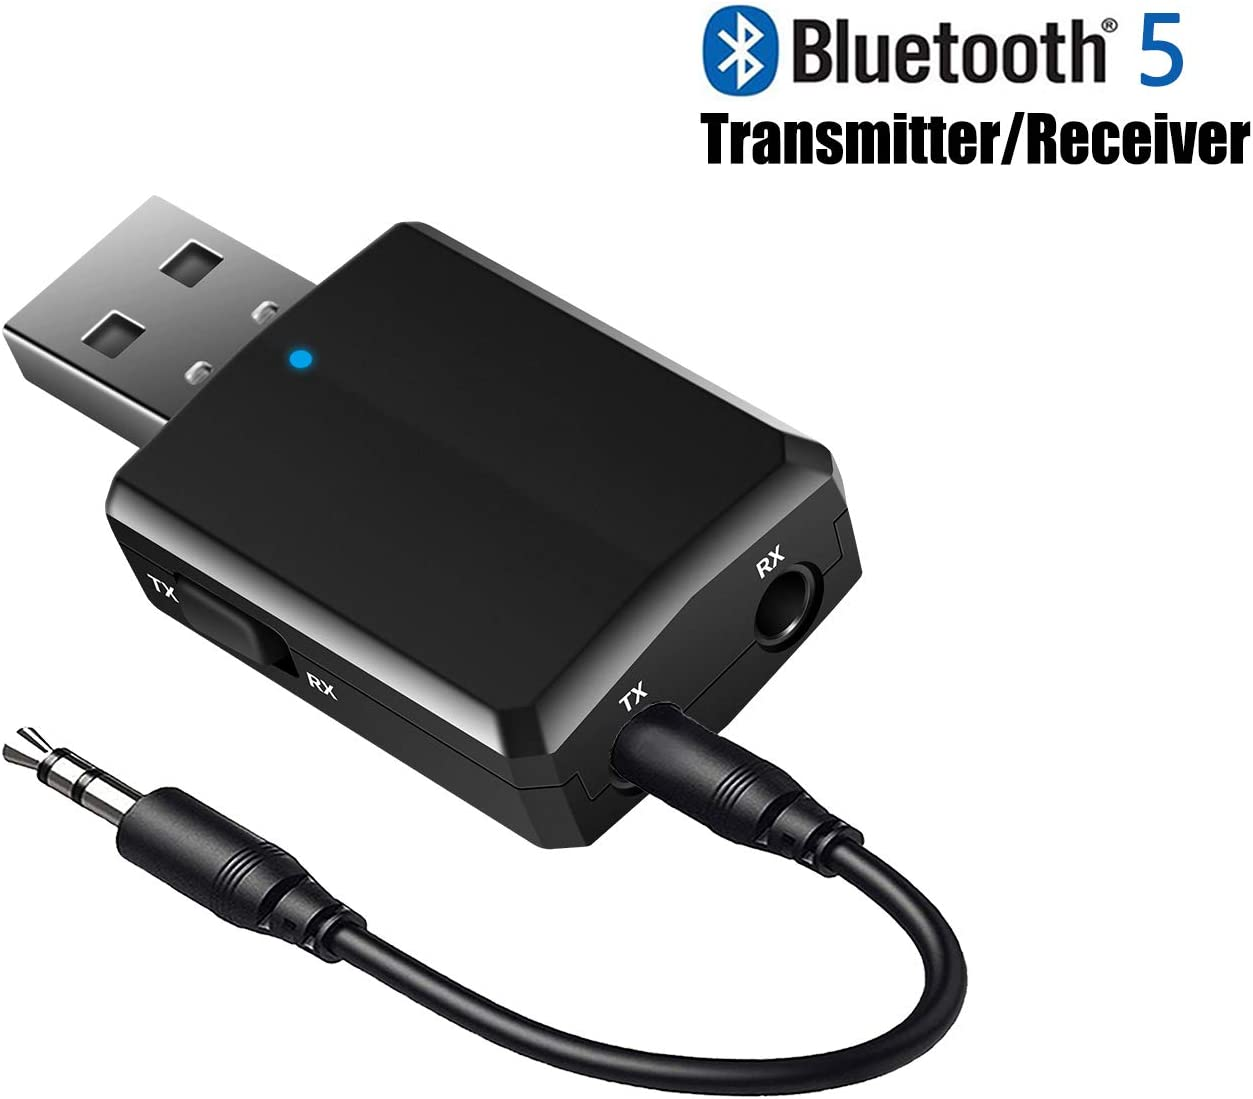 ISOBEL USB Bluetooth Audio Transmitter Receiver, 3 in 1 HiFi Wireless Audio Adapter, Bluetooth 5.0 EDR Adapter with 3.5mm AUX for Car TV Headphones PC Home Stereo, USB Power Supply, Plug and Play